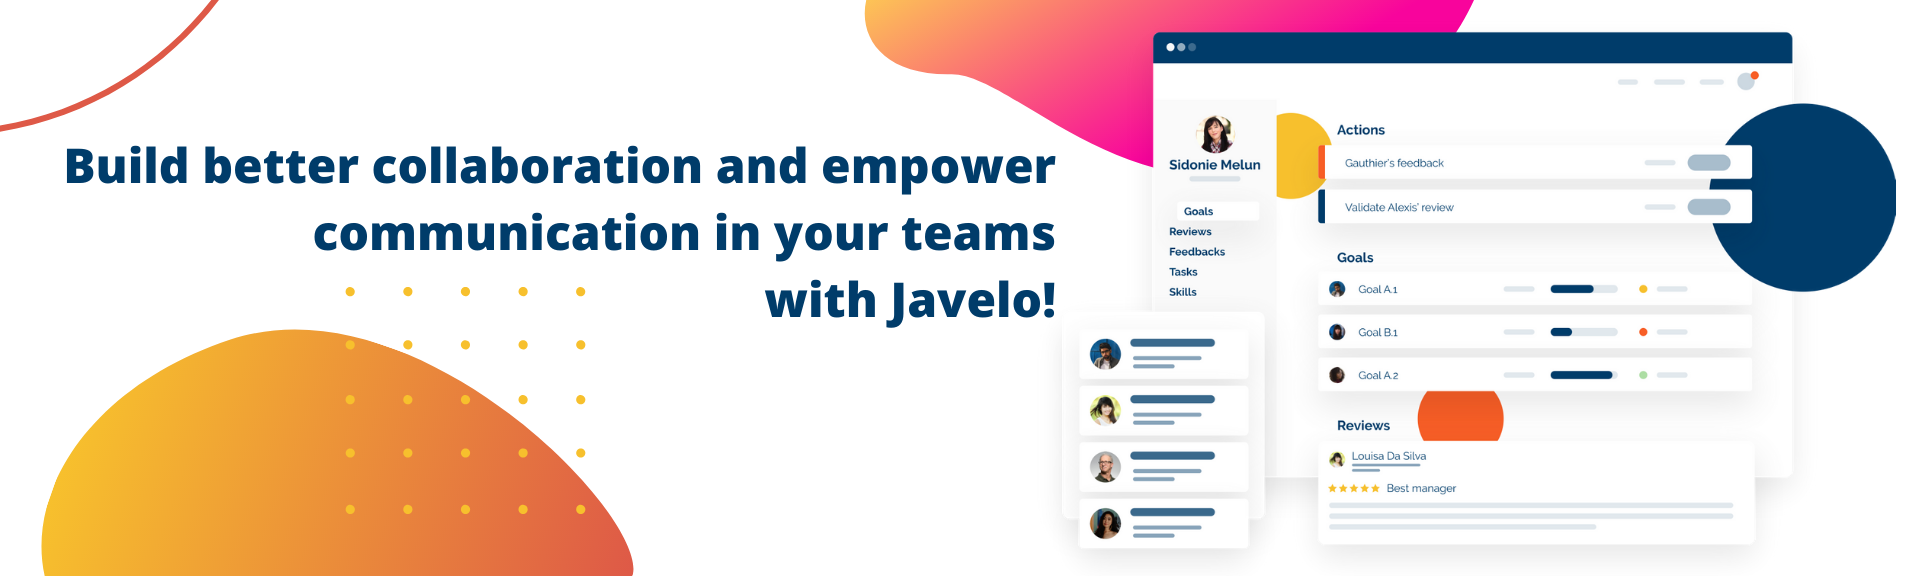 Review Javelo: Continuous performance management made easy! - Appvizer